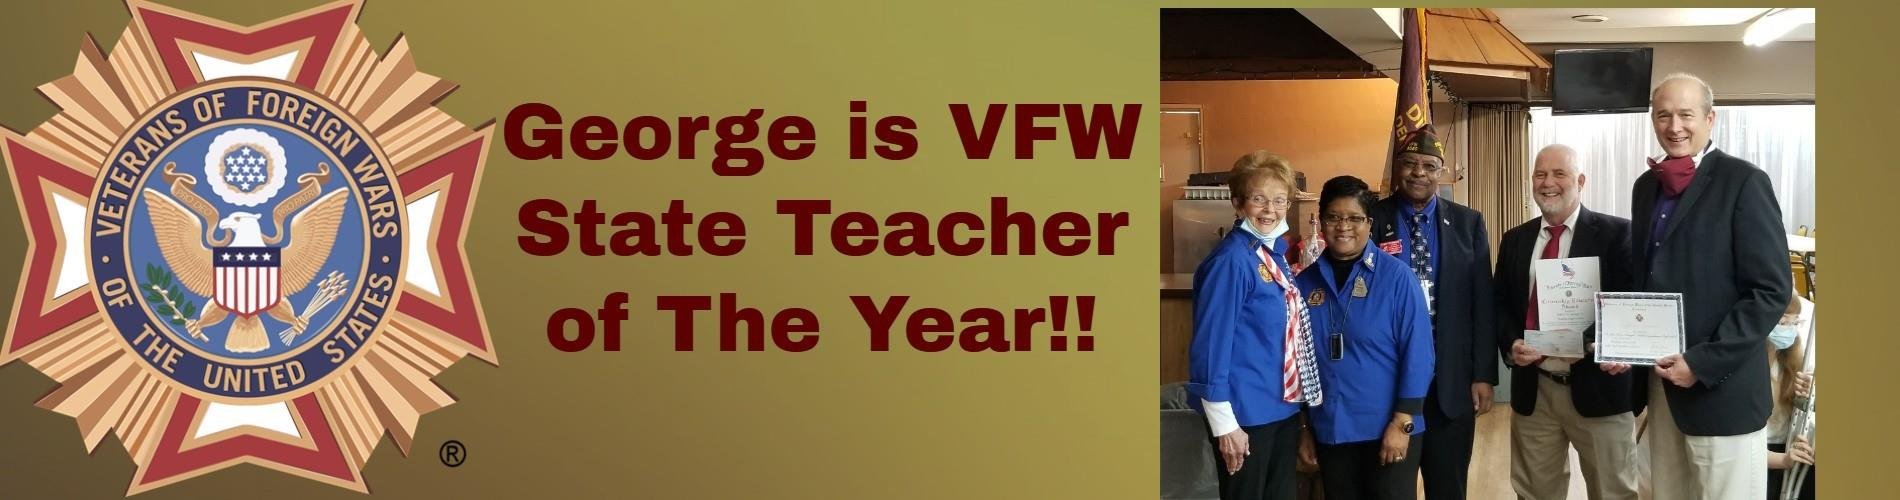 Bobby George Receives State VFW Teacher of the Year Award